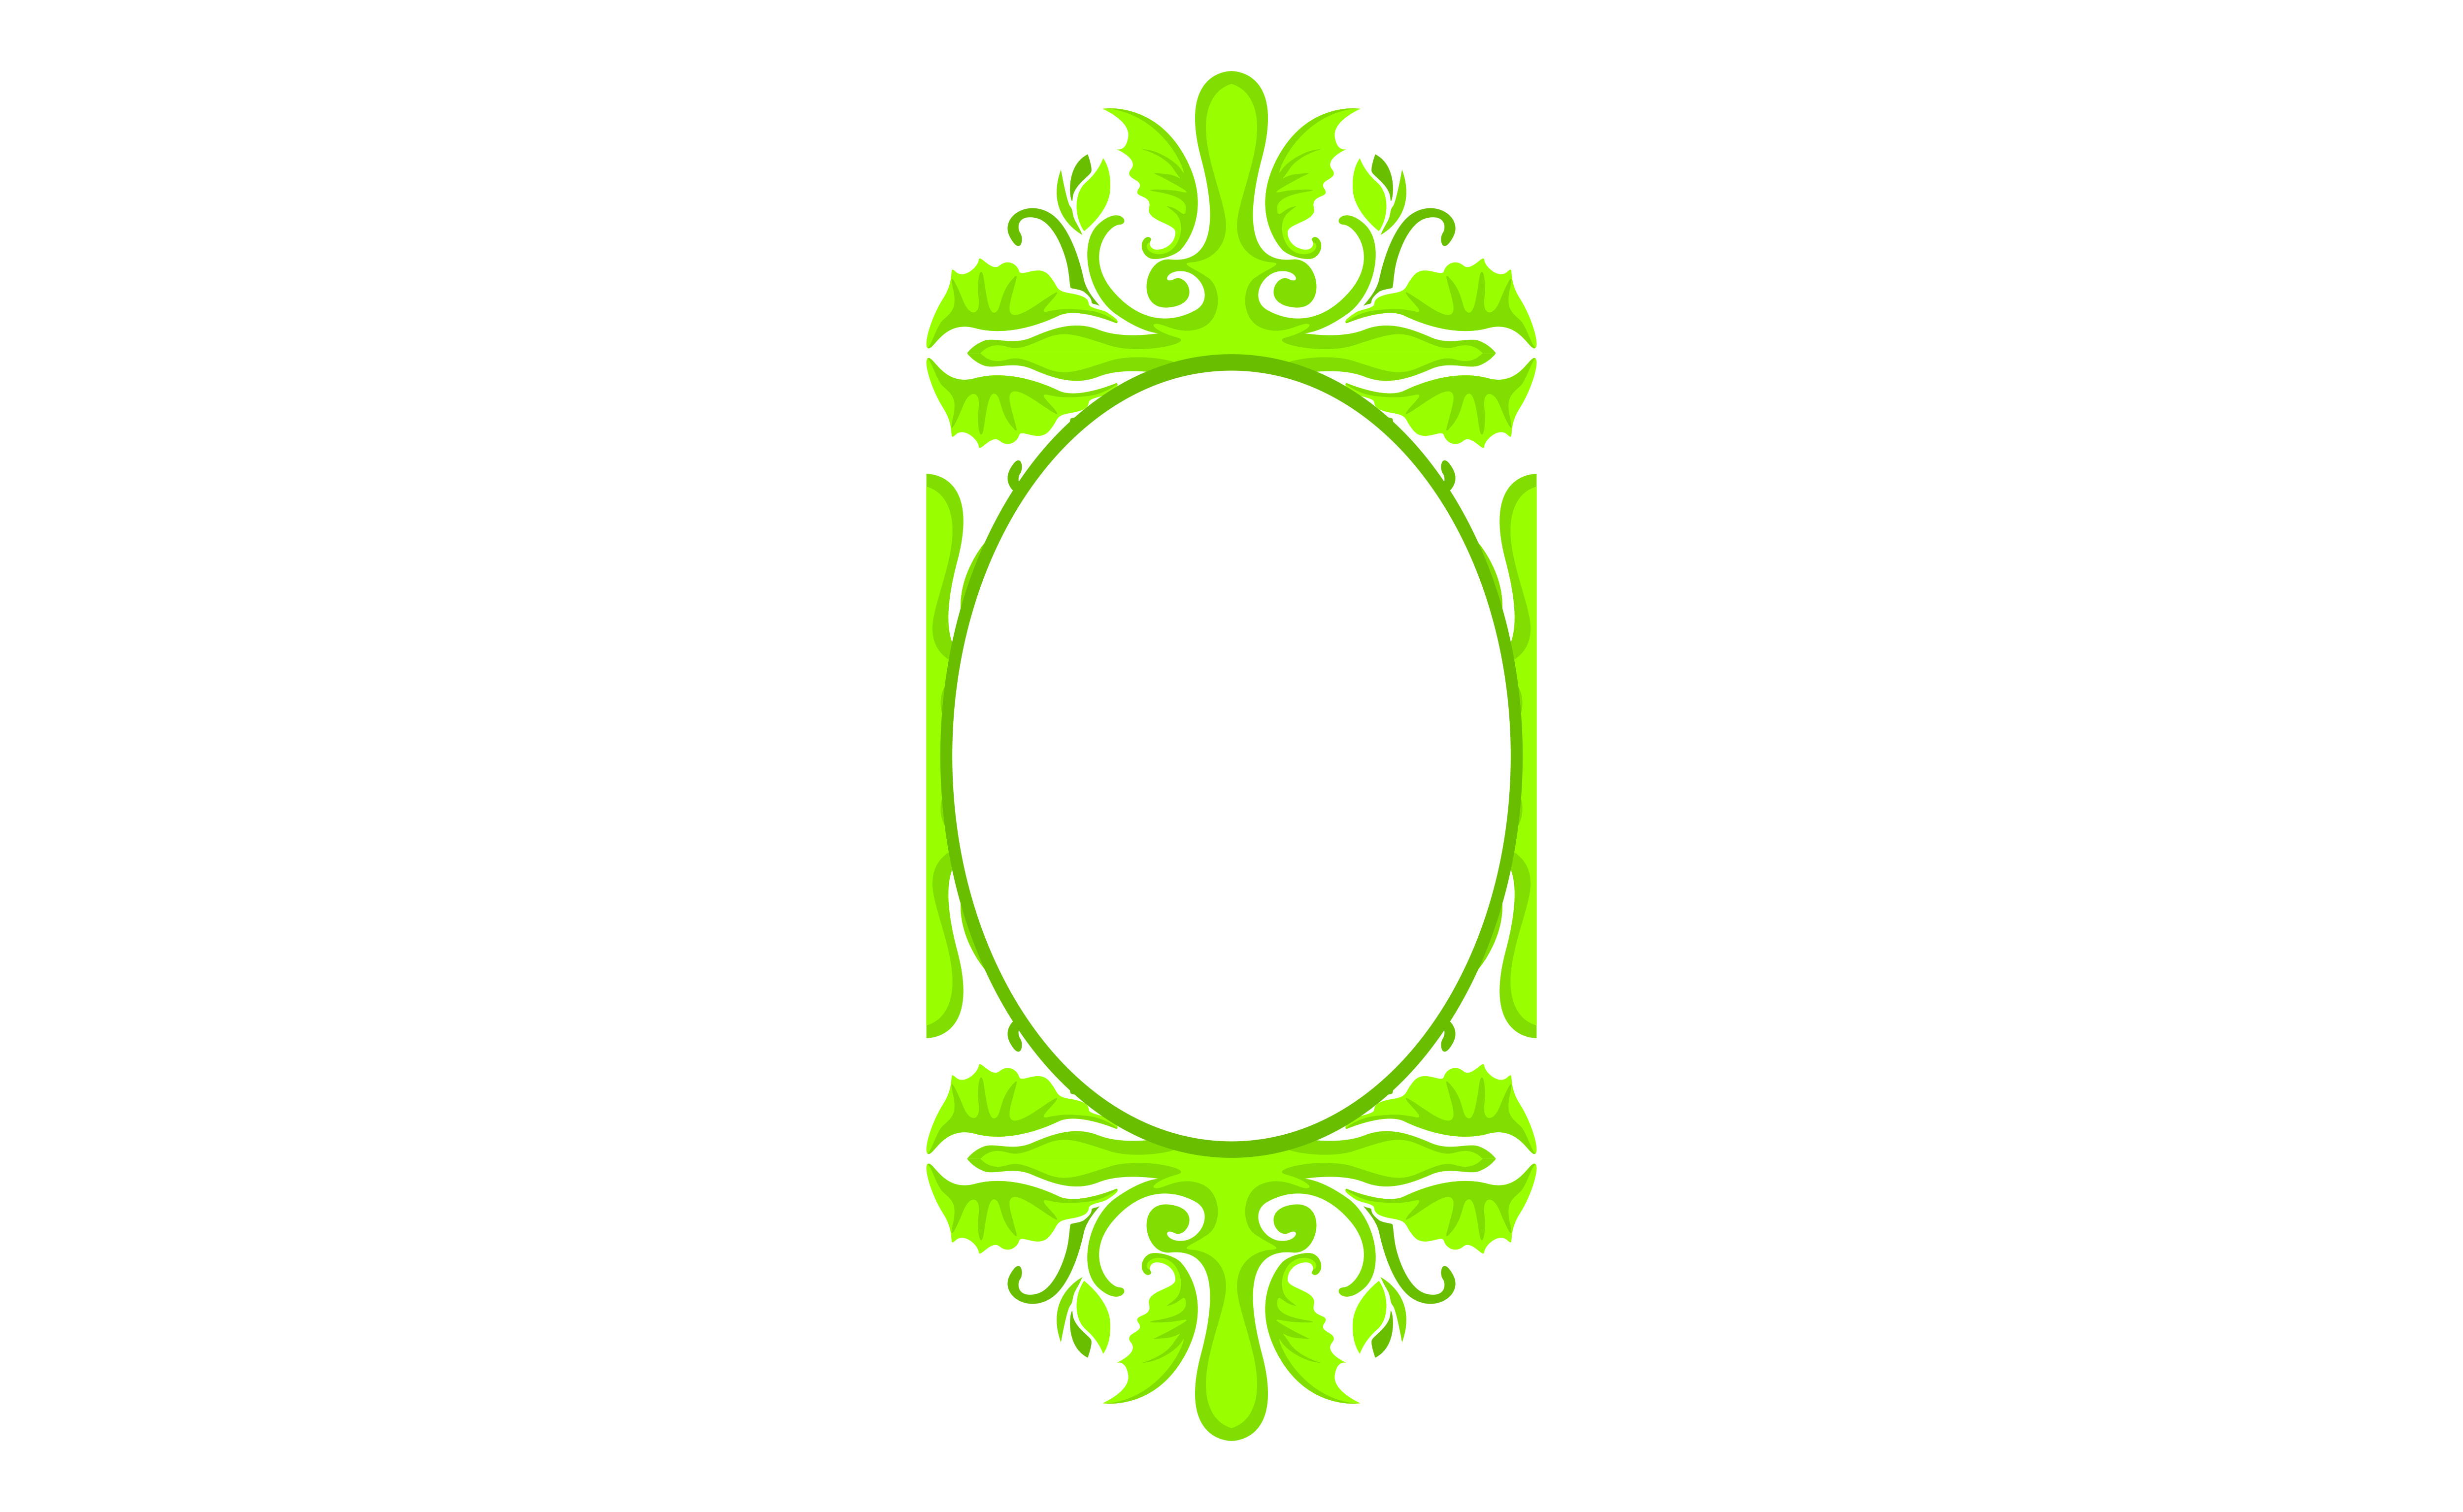 Download Free Green Ornament Border Frame Design Graphic By Arief Sapta Adjie for Cricut Explore, Silhouette and other cutting machines.